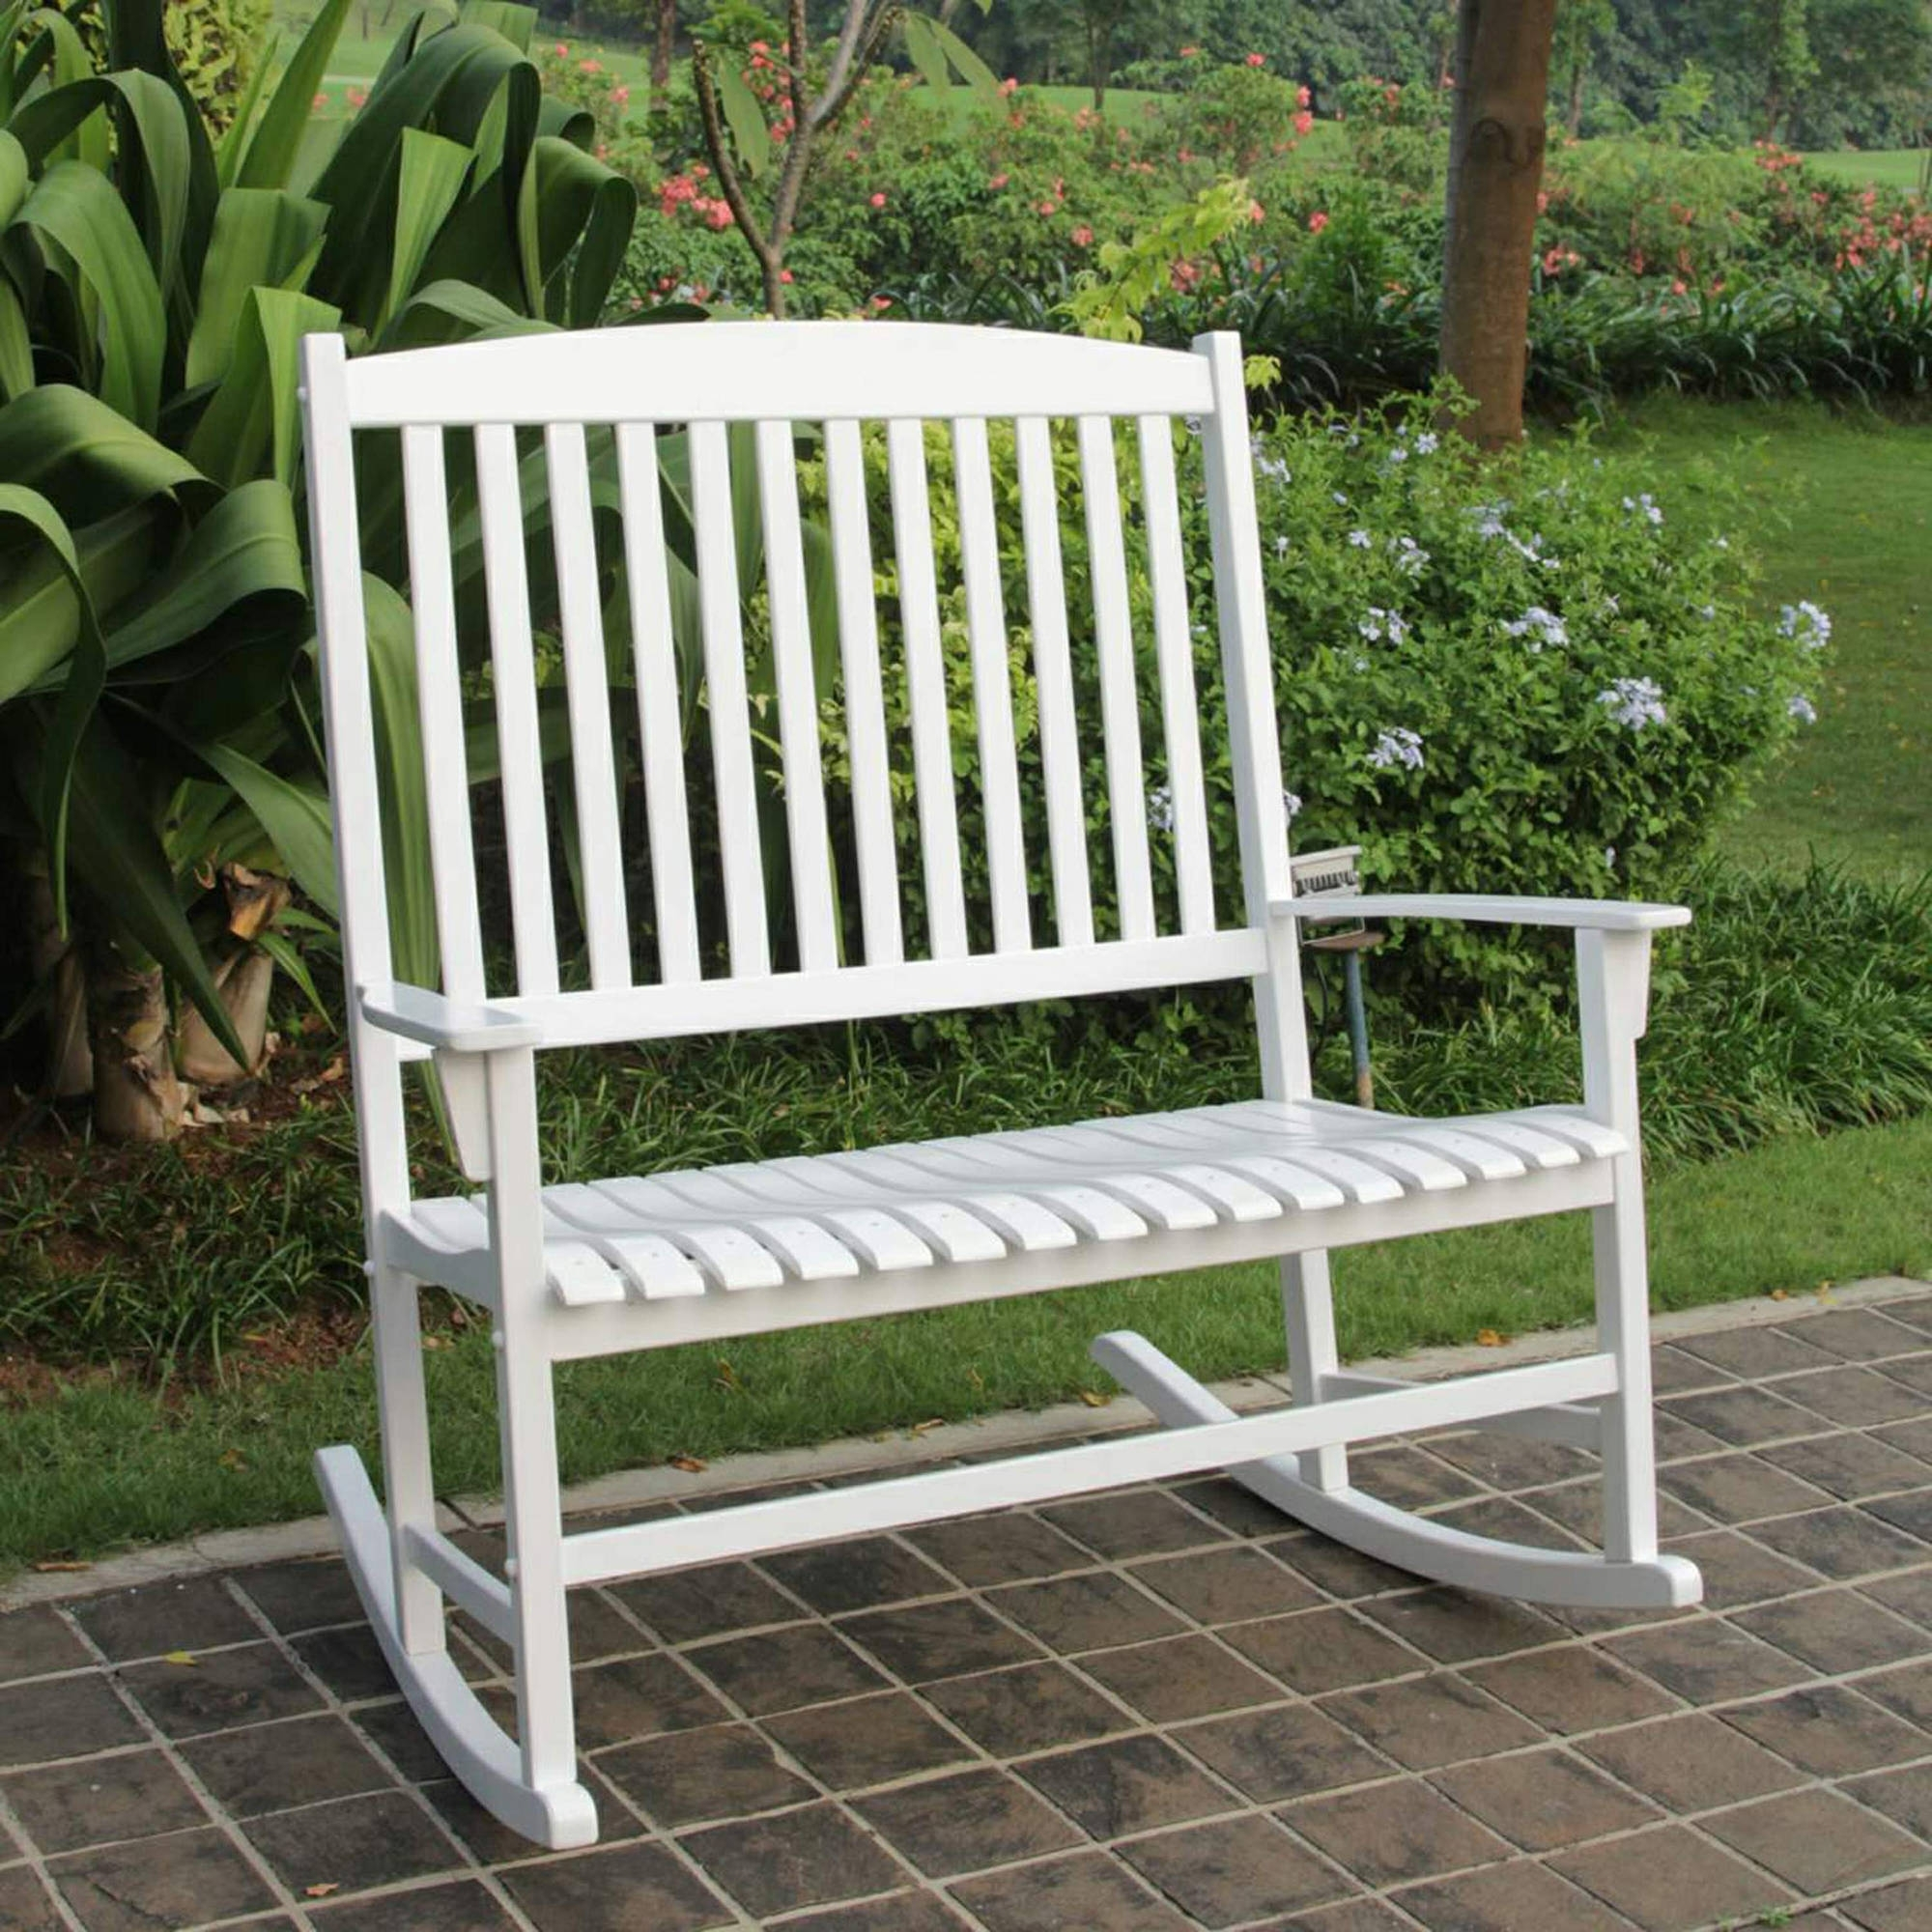 Fashionable Patio Loveseat White Hardwood Outdoor Rocking Chair For 2 In Outdoor Rocking Chairs (View 14 of 20)